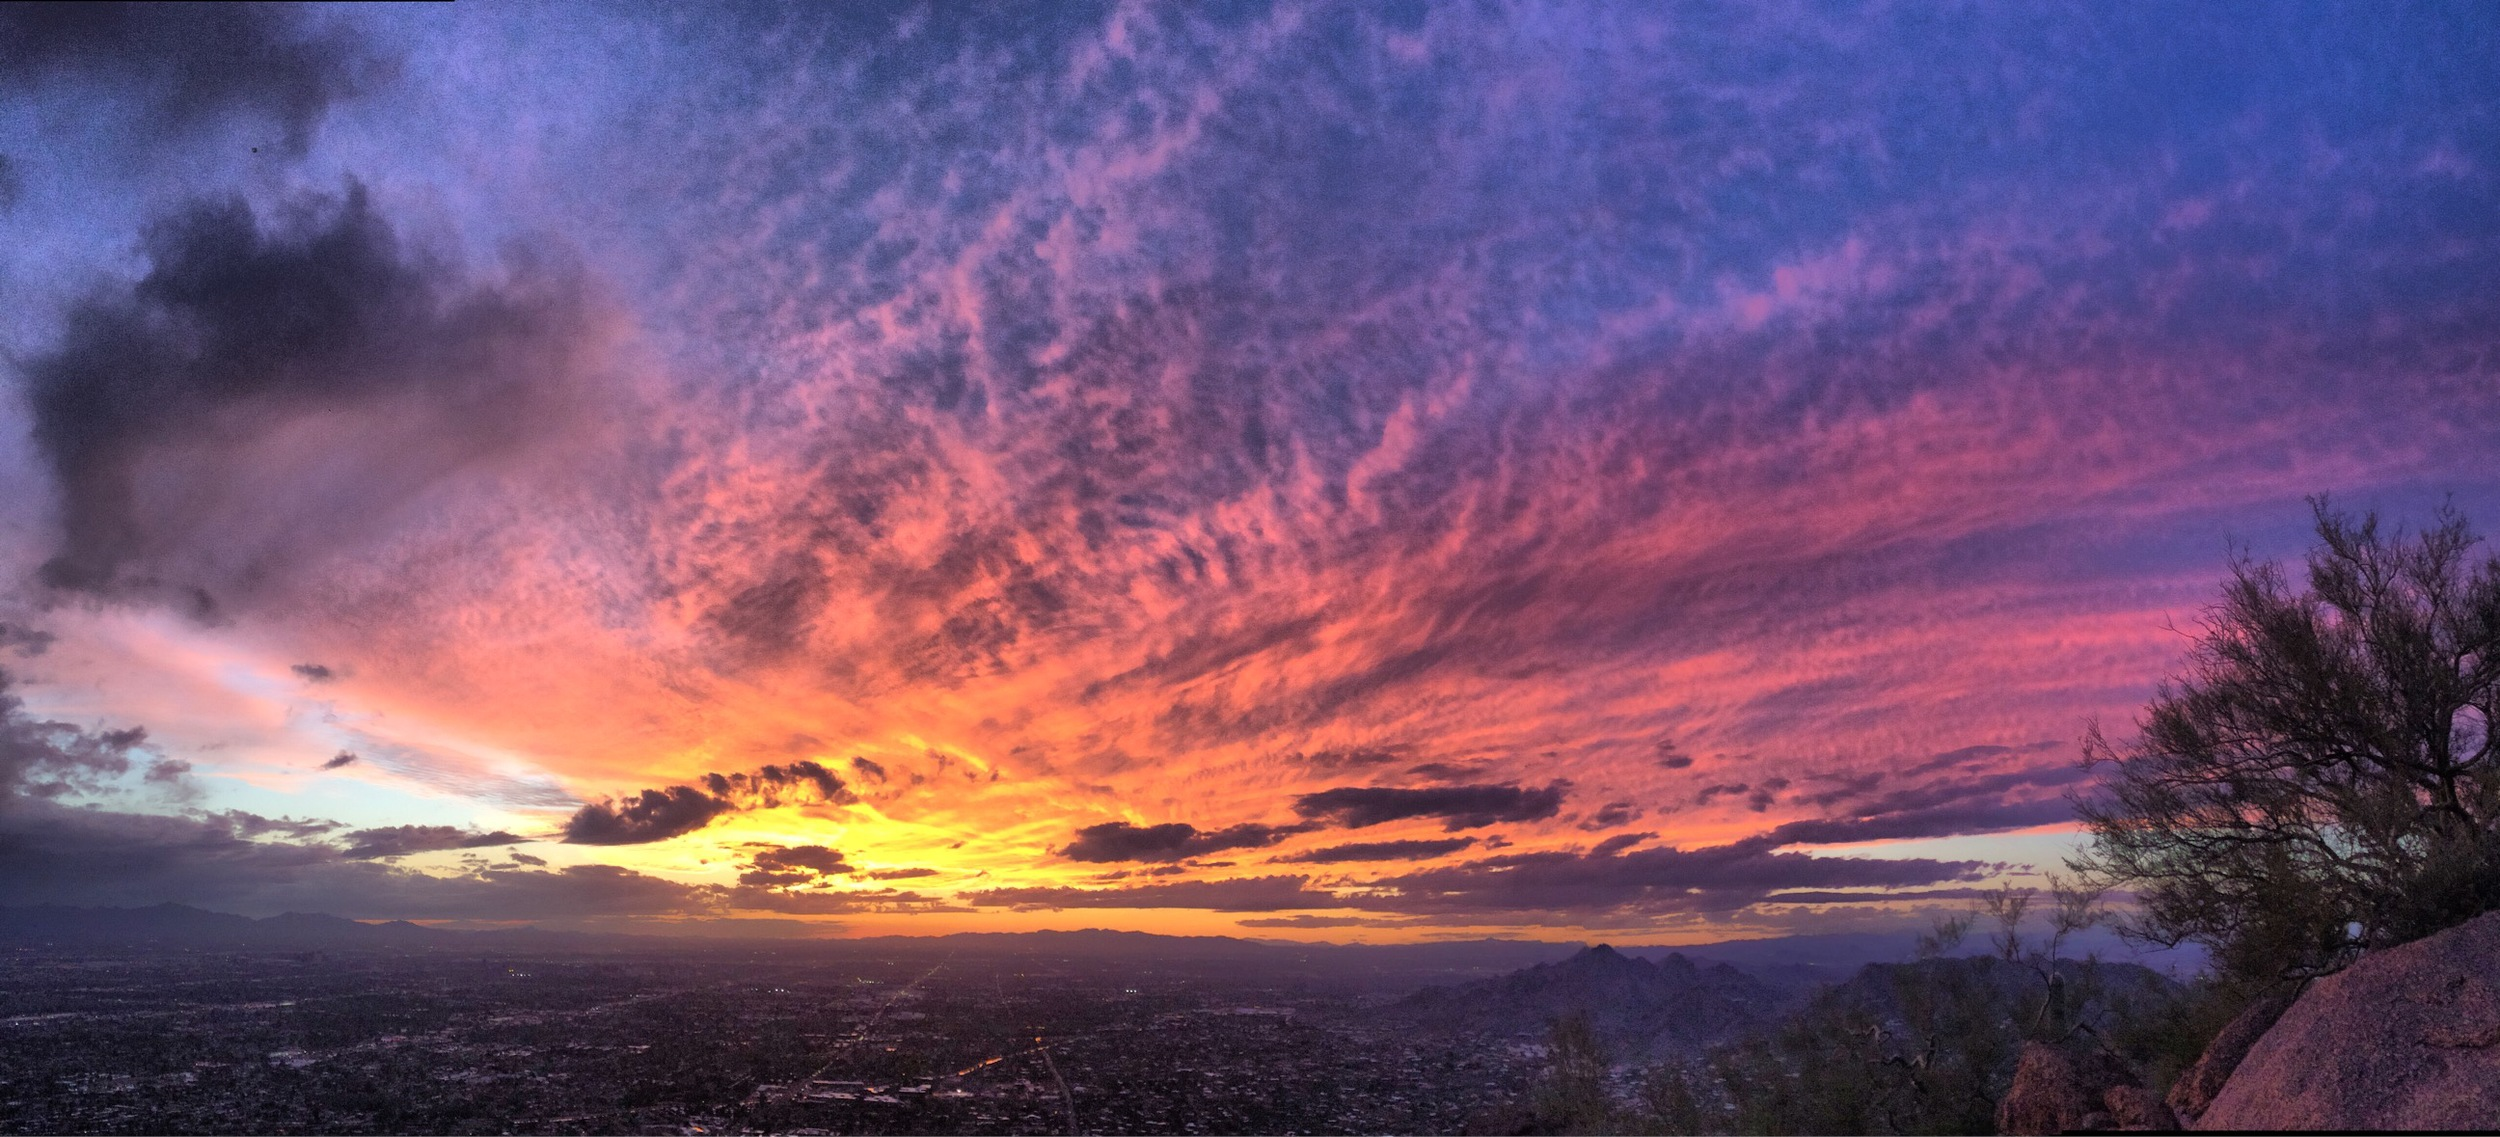 Sunset at Camelback Summit